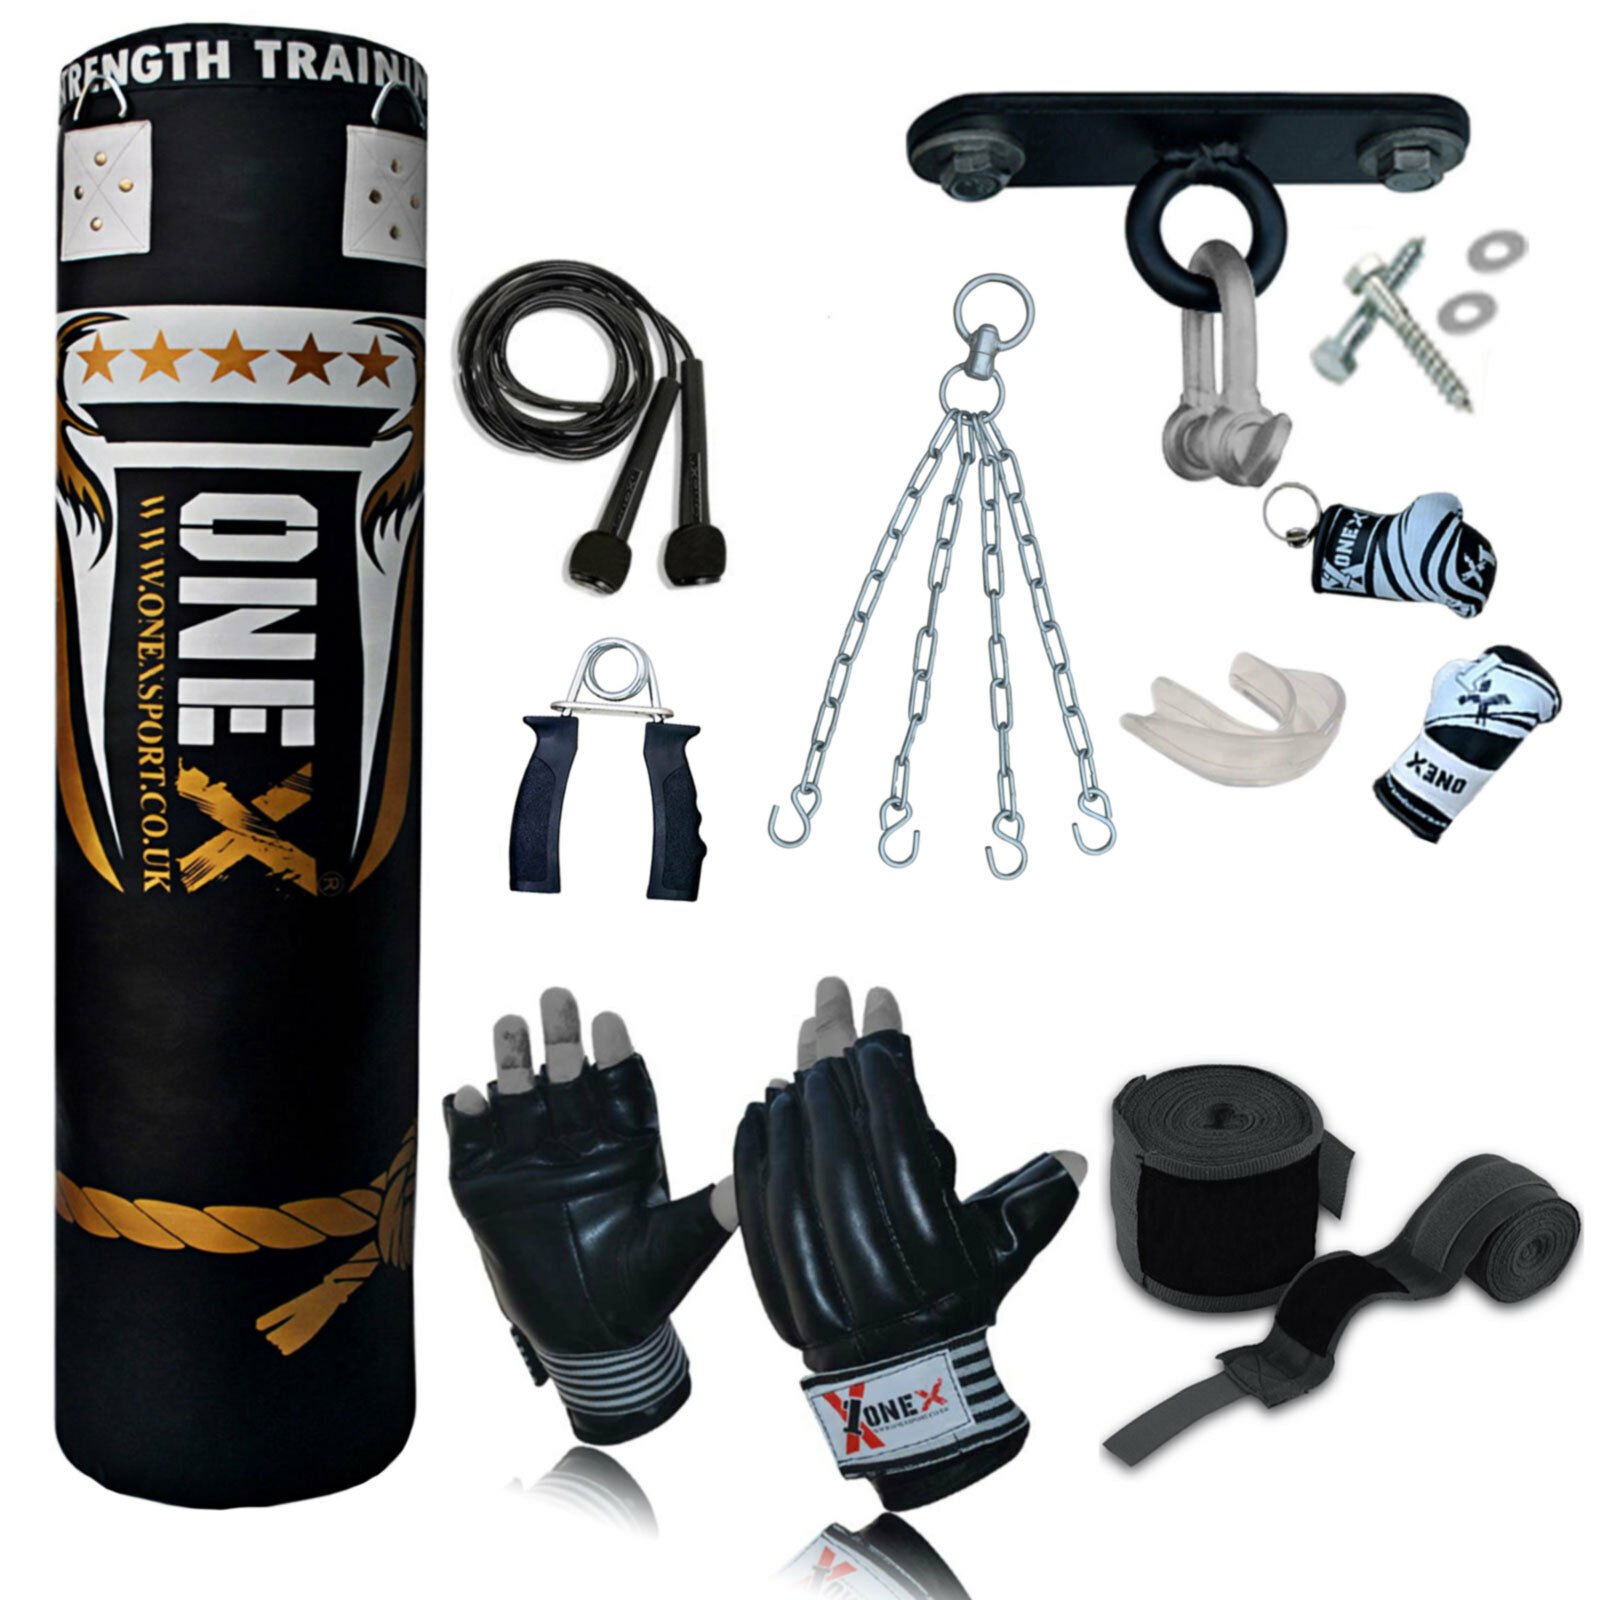 Top 13 13 13 Piece 5ft Heavy Filled Boxing Punch Bag Set,Gloves,Hook,Chains MMA Pad 8369b1